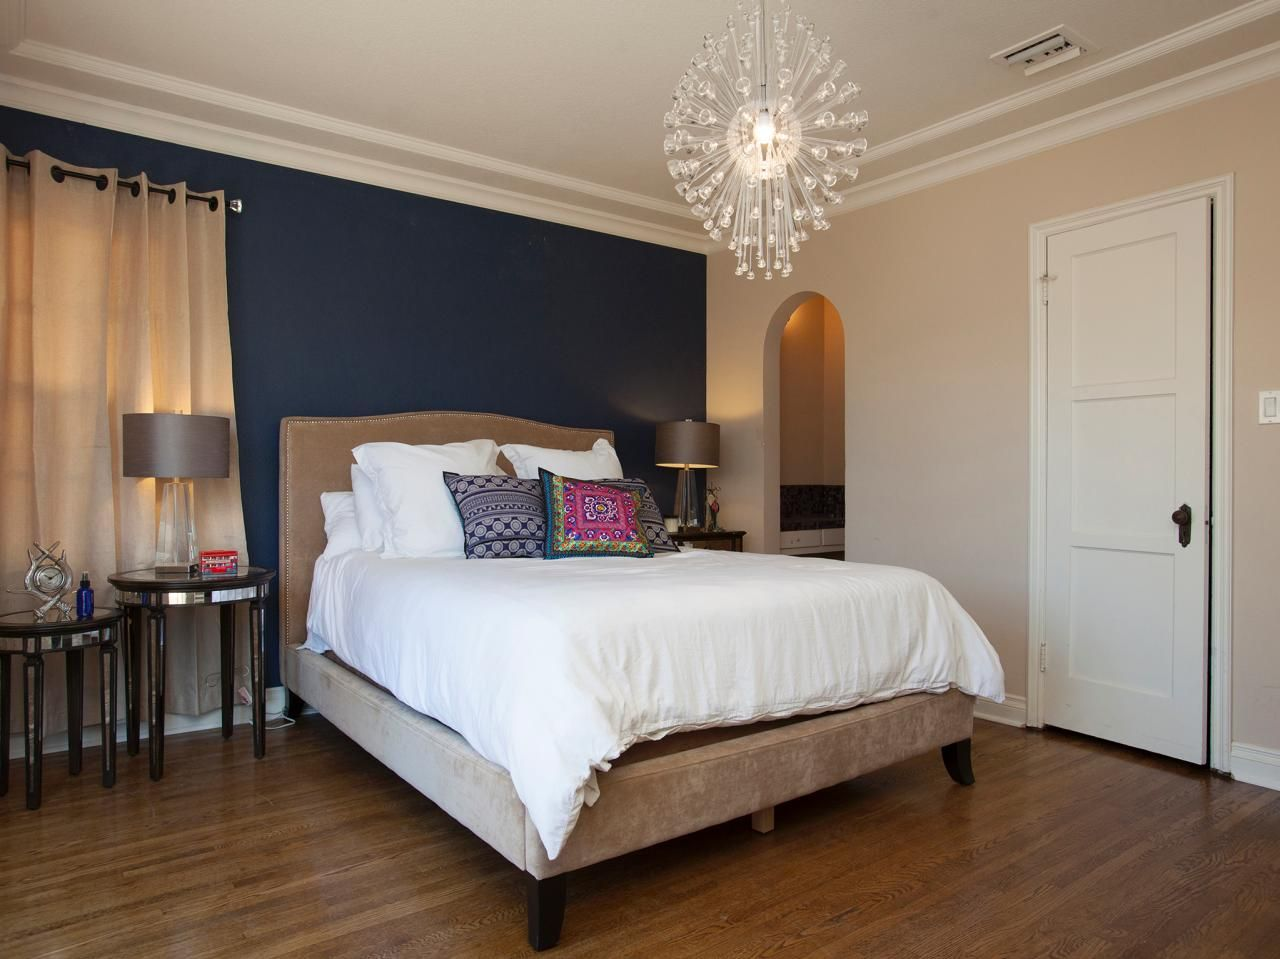 25 Amazing Room Makeovers From Hgtv 39 S House Hunters Renovation Room Makeovers Hgtv And Room